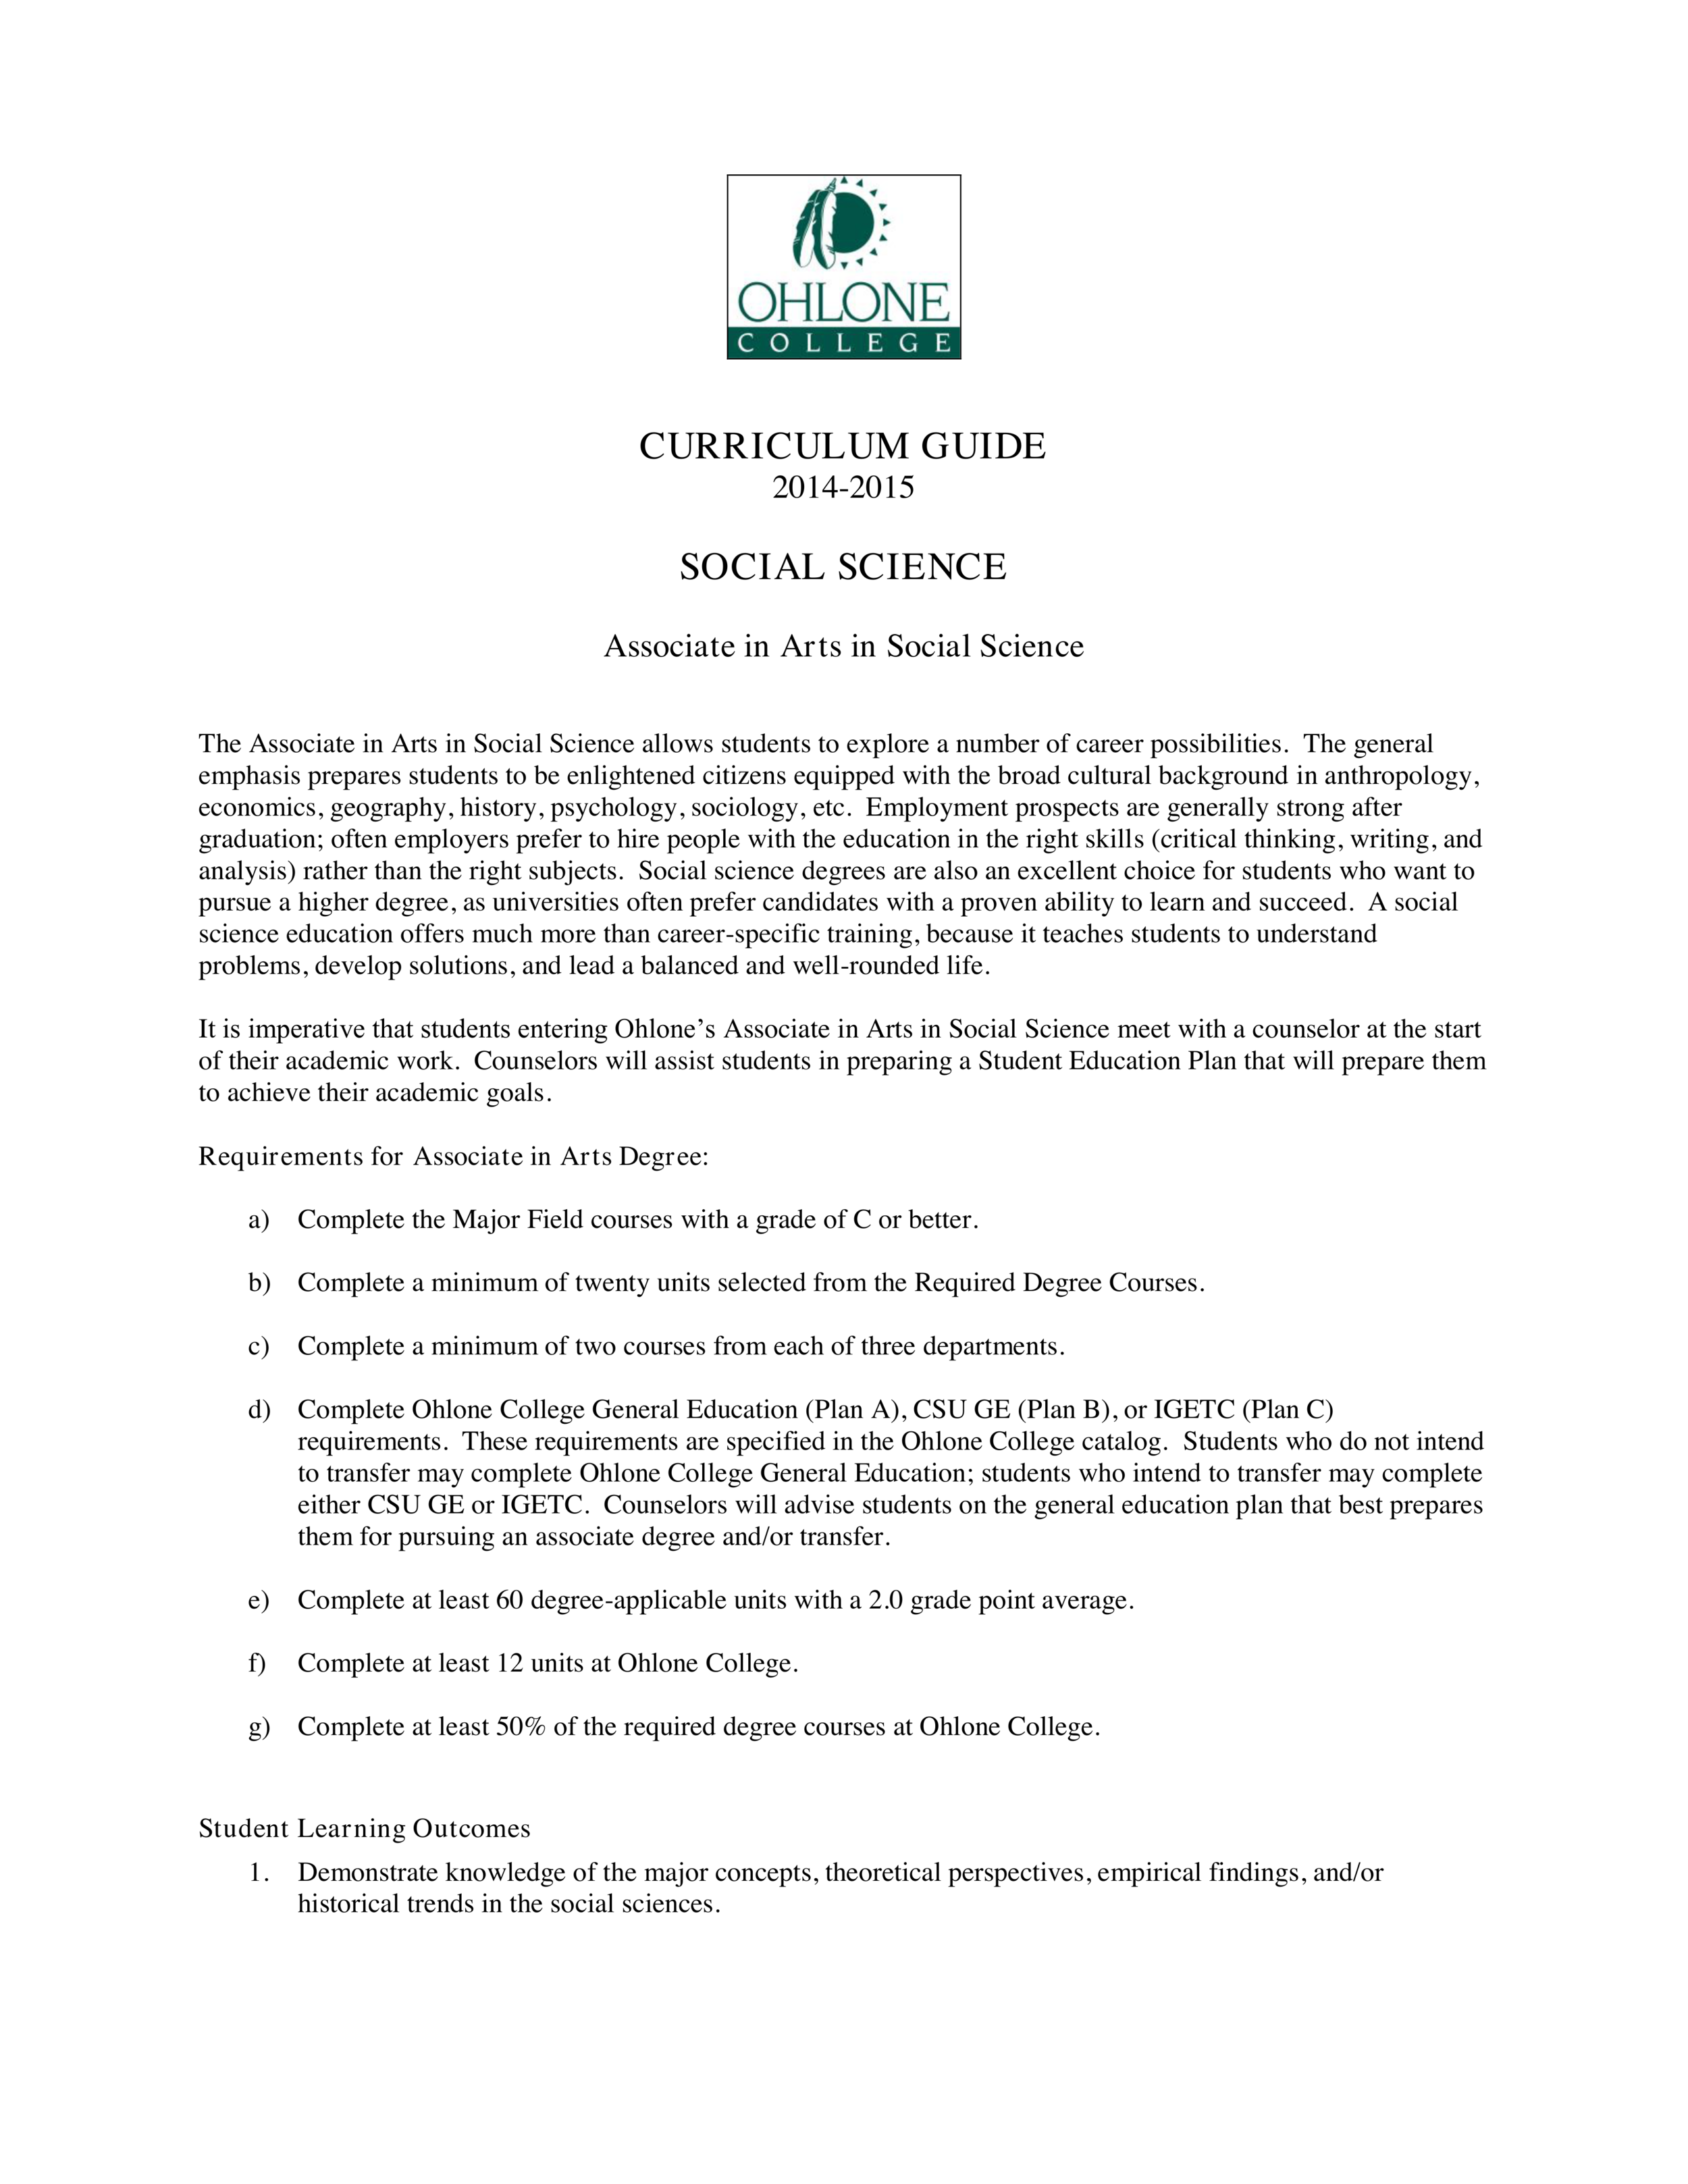 Curriculum Guide: Associate of Arts in Social Science, Ohlone College, Fremont, CA, 2015 (1/3),  https://www.ohlone.edu/sites/default/files/1415-socialscience.pdf,  Accessed 10 May 2019